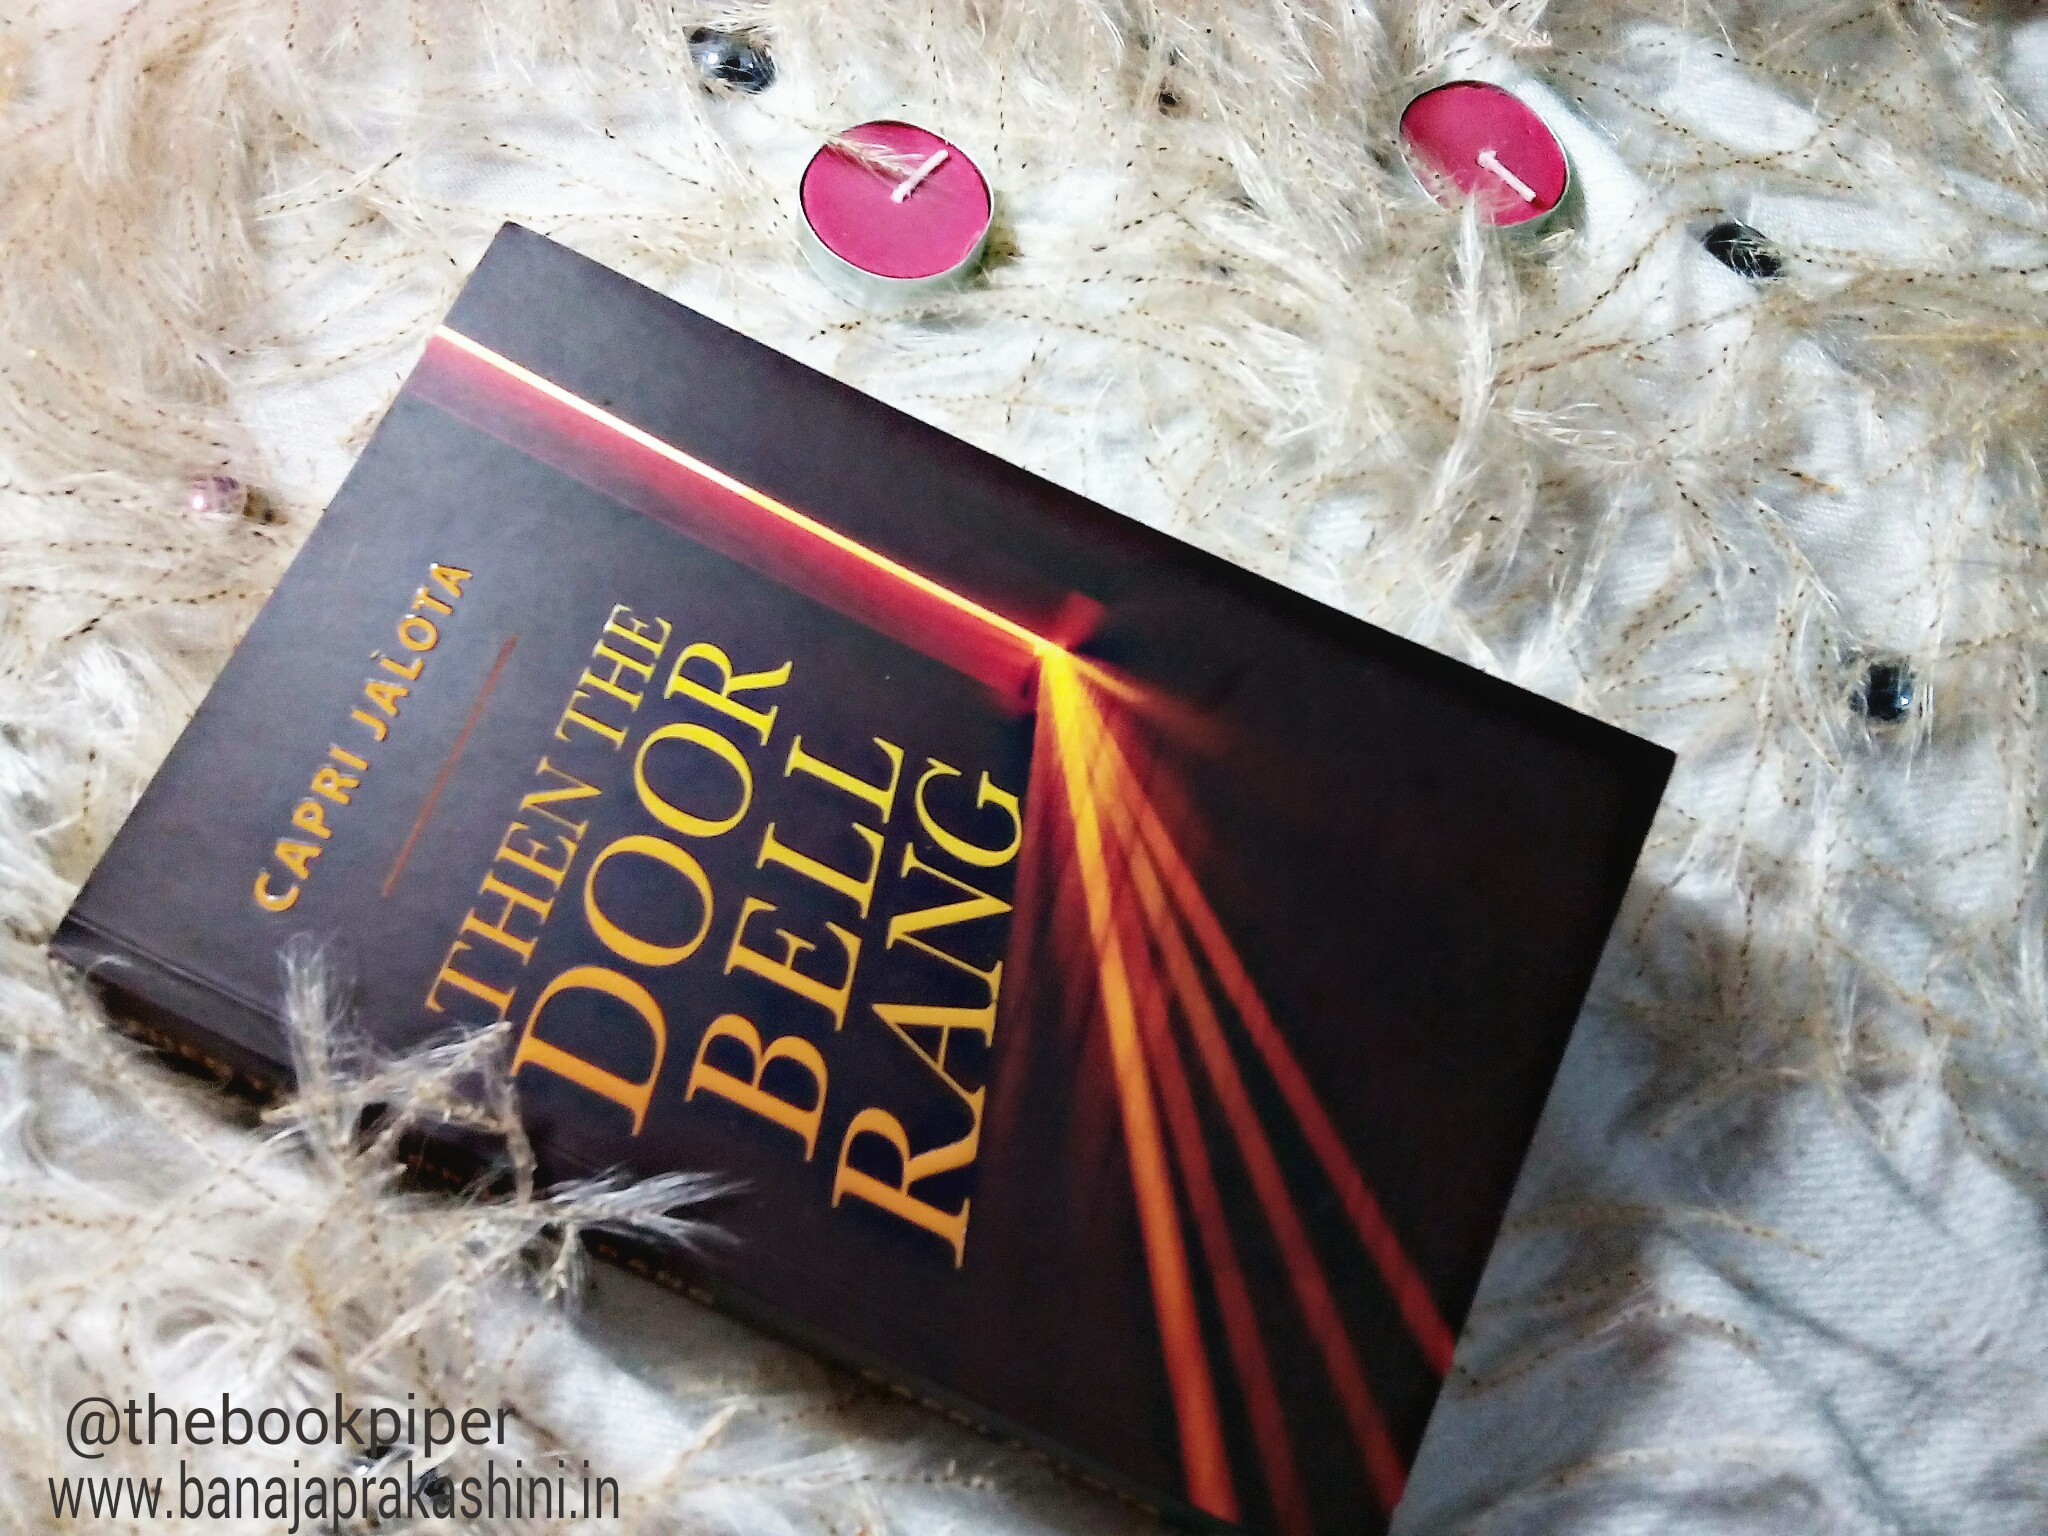 Review Pen: Then The Door Bell Rang by Capri Jalota